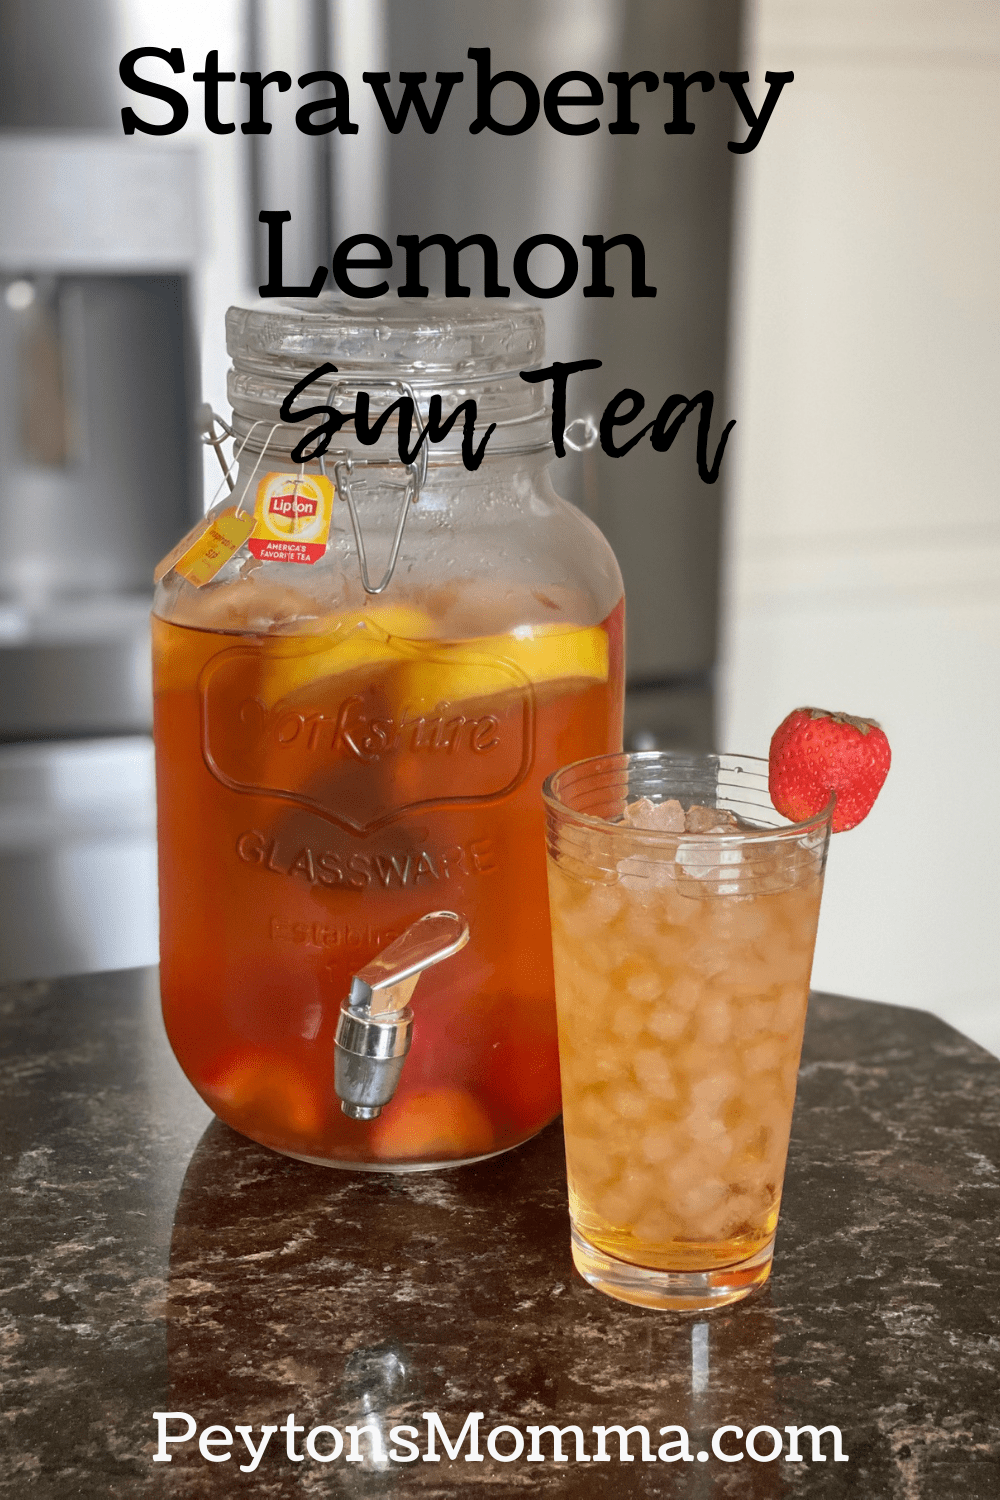 Strawberry Lemon Sun Tea - Peyton's Momma™